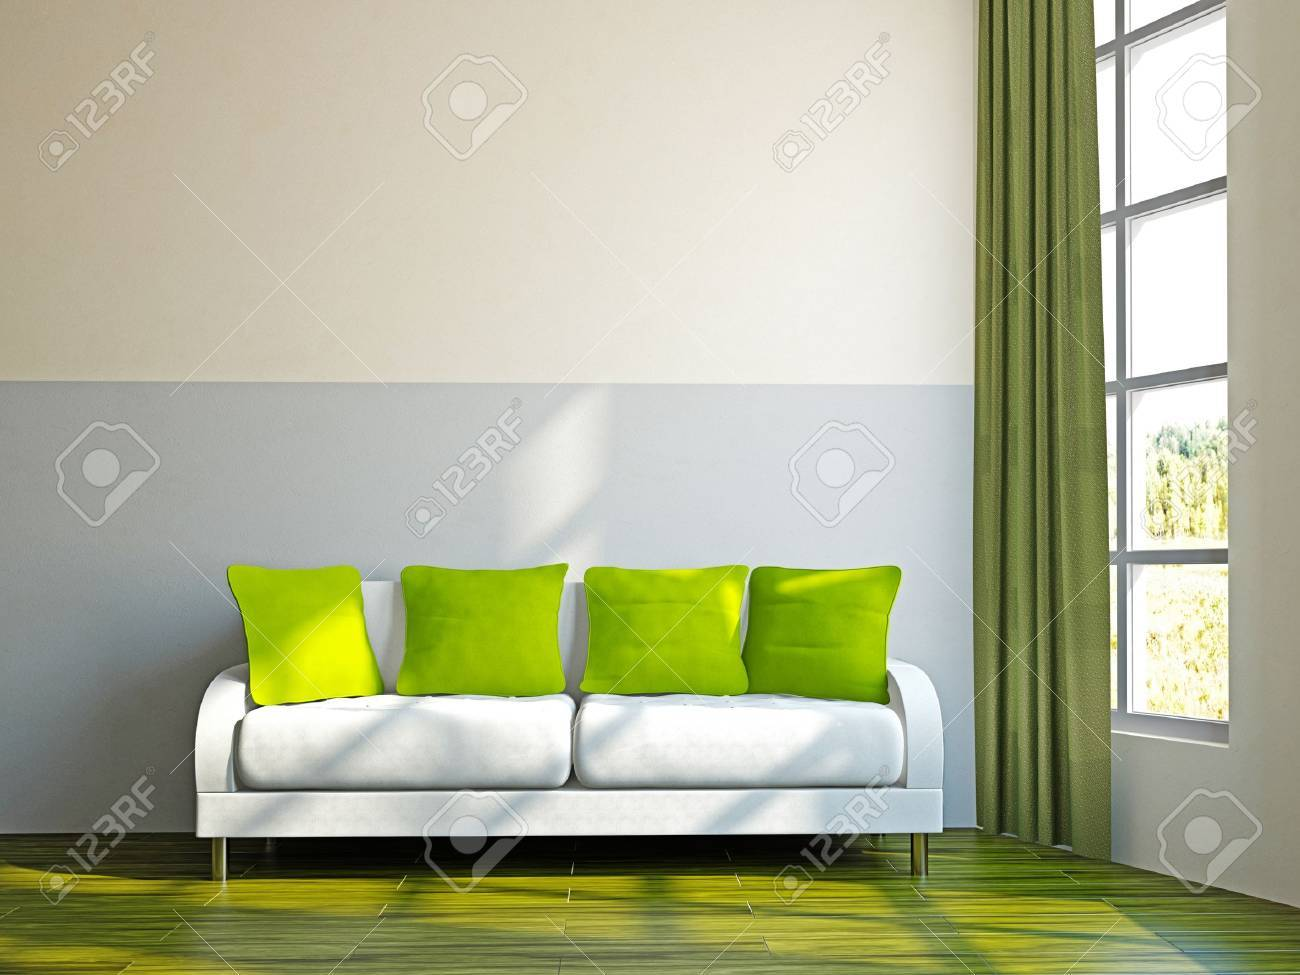 Livingroom with sofa and a plant near the window Stock Photo - 17454511